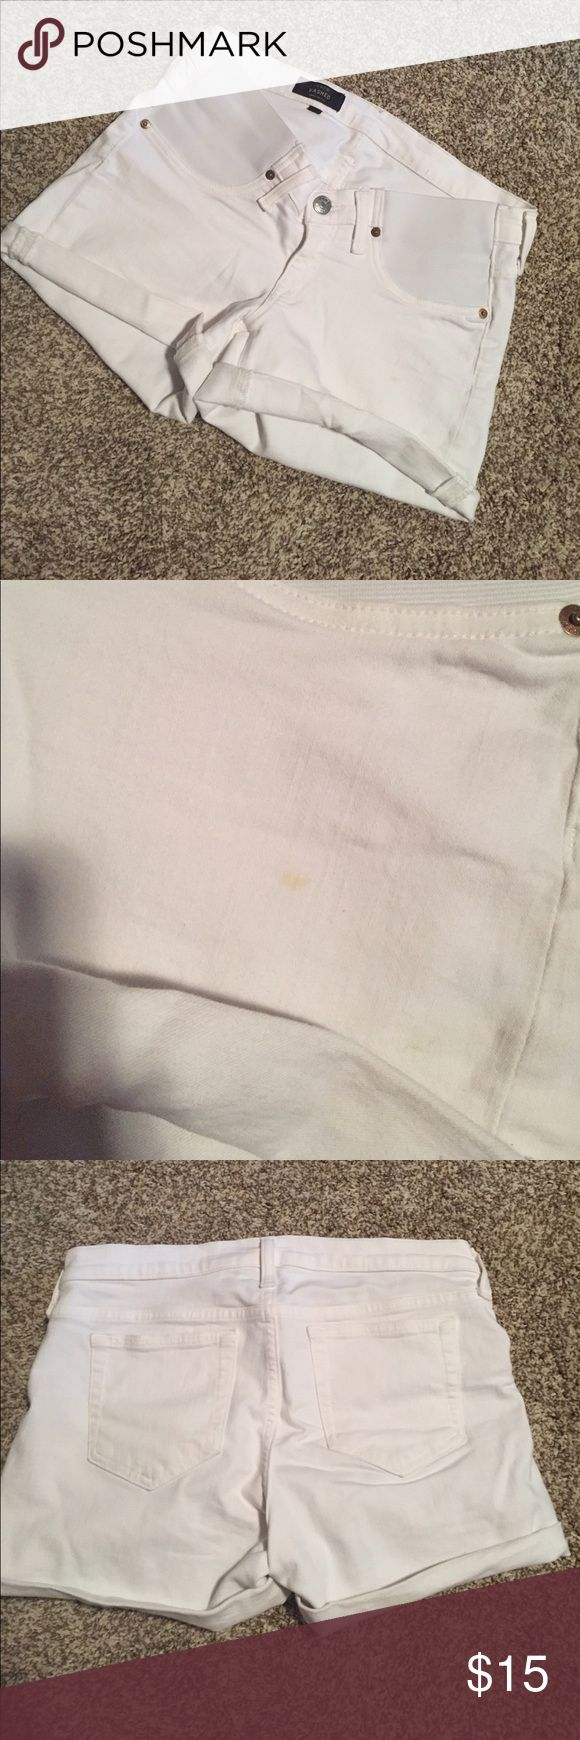 White Denim JCrew maternity short Size 29, gently used, white denim maternity shorts with built in bands at sides. Raw hem or cuff them for a cute summer style! Small stain on the left front as seen in the photo above, but would probably come out with a wash. Very stretchy. J. Crew Shorts Jean Shorts